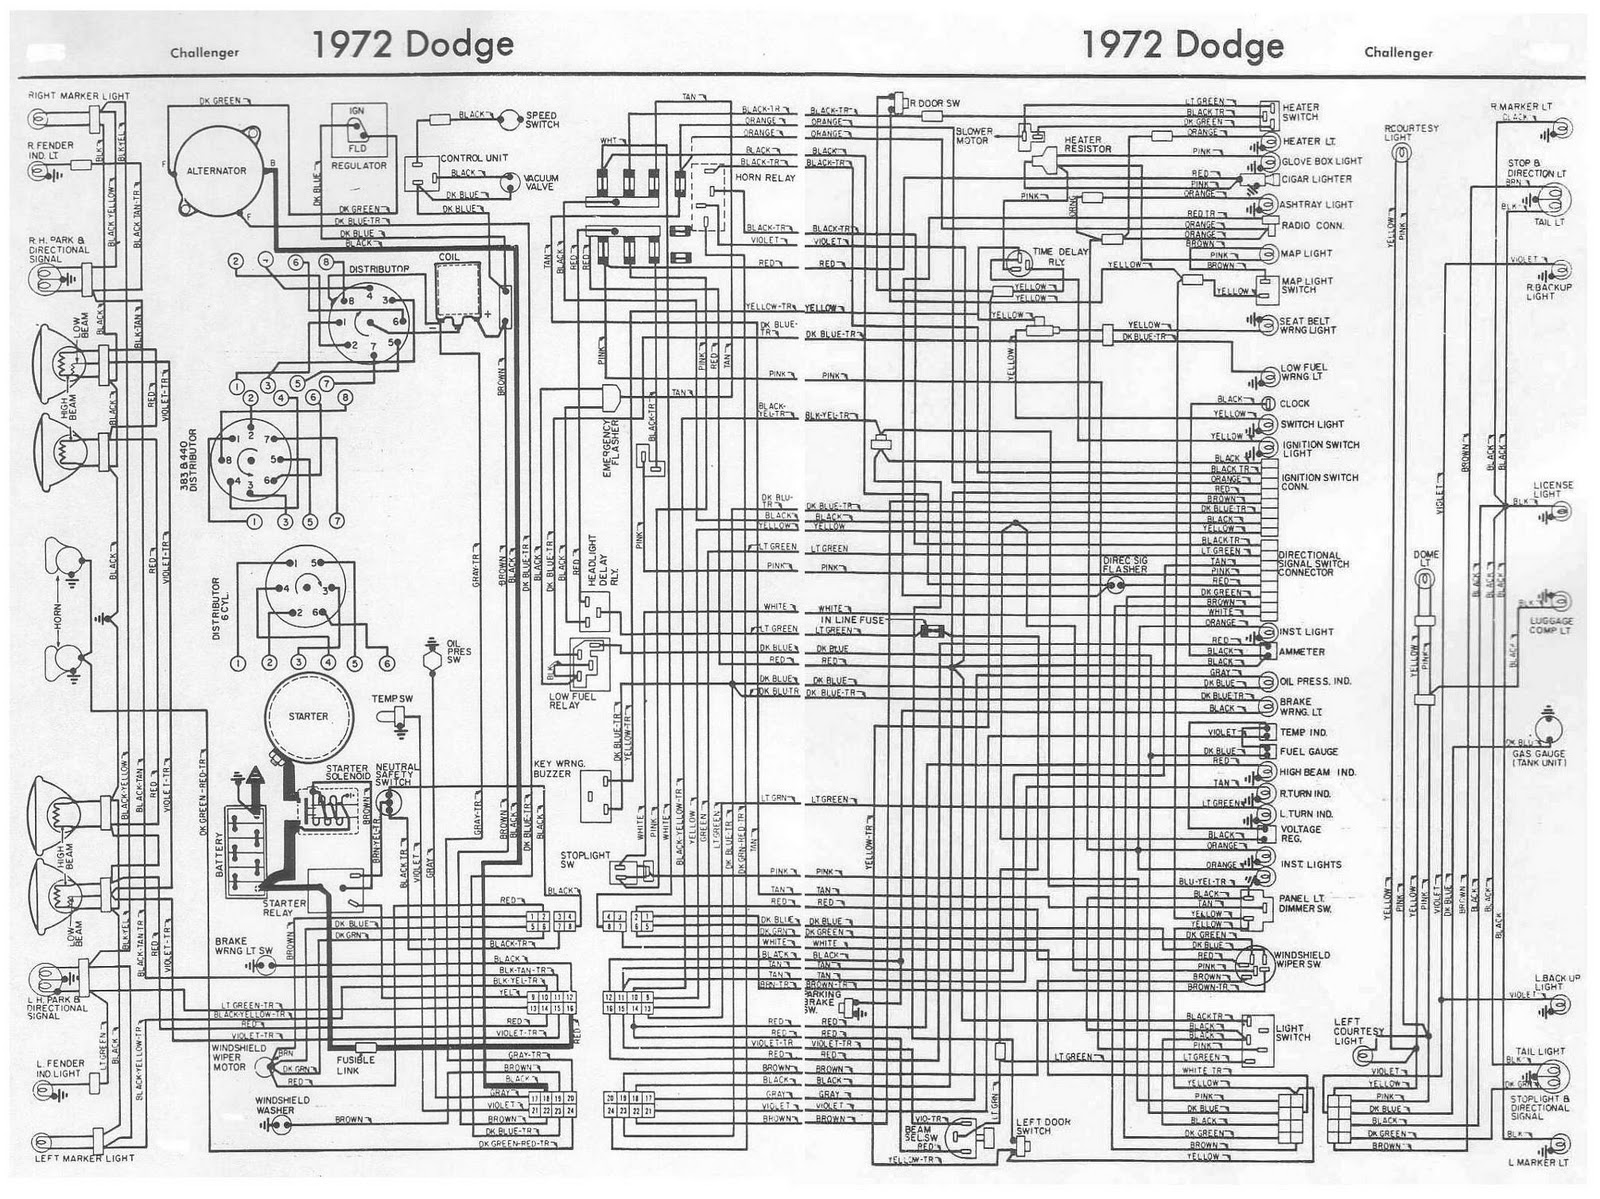 Dodge+Challenger+1972+Complete+Wiring+Diagram dodge challenger 1972 complete wiring diagram all about wiring dodge challenger wiring diagram at gsmx.co